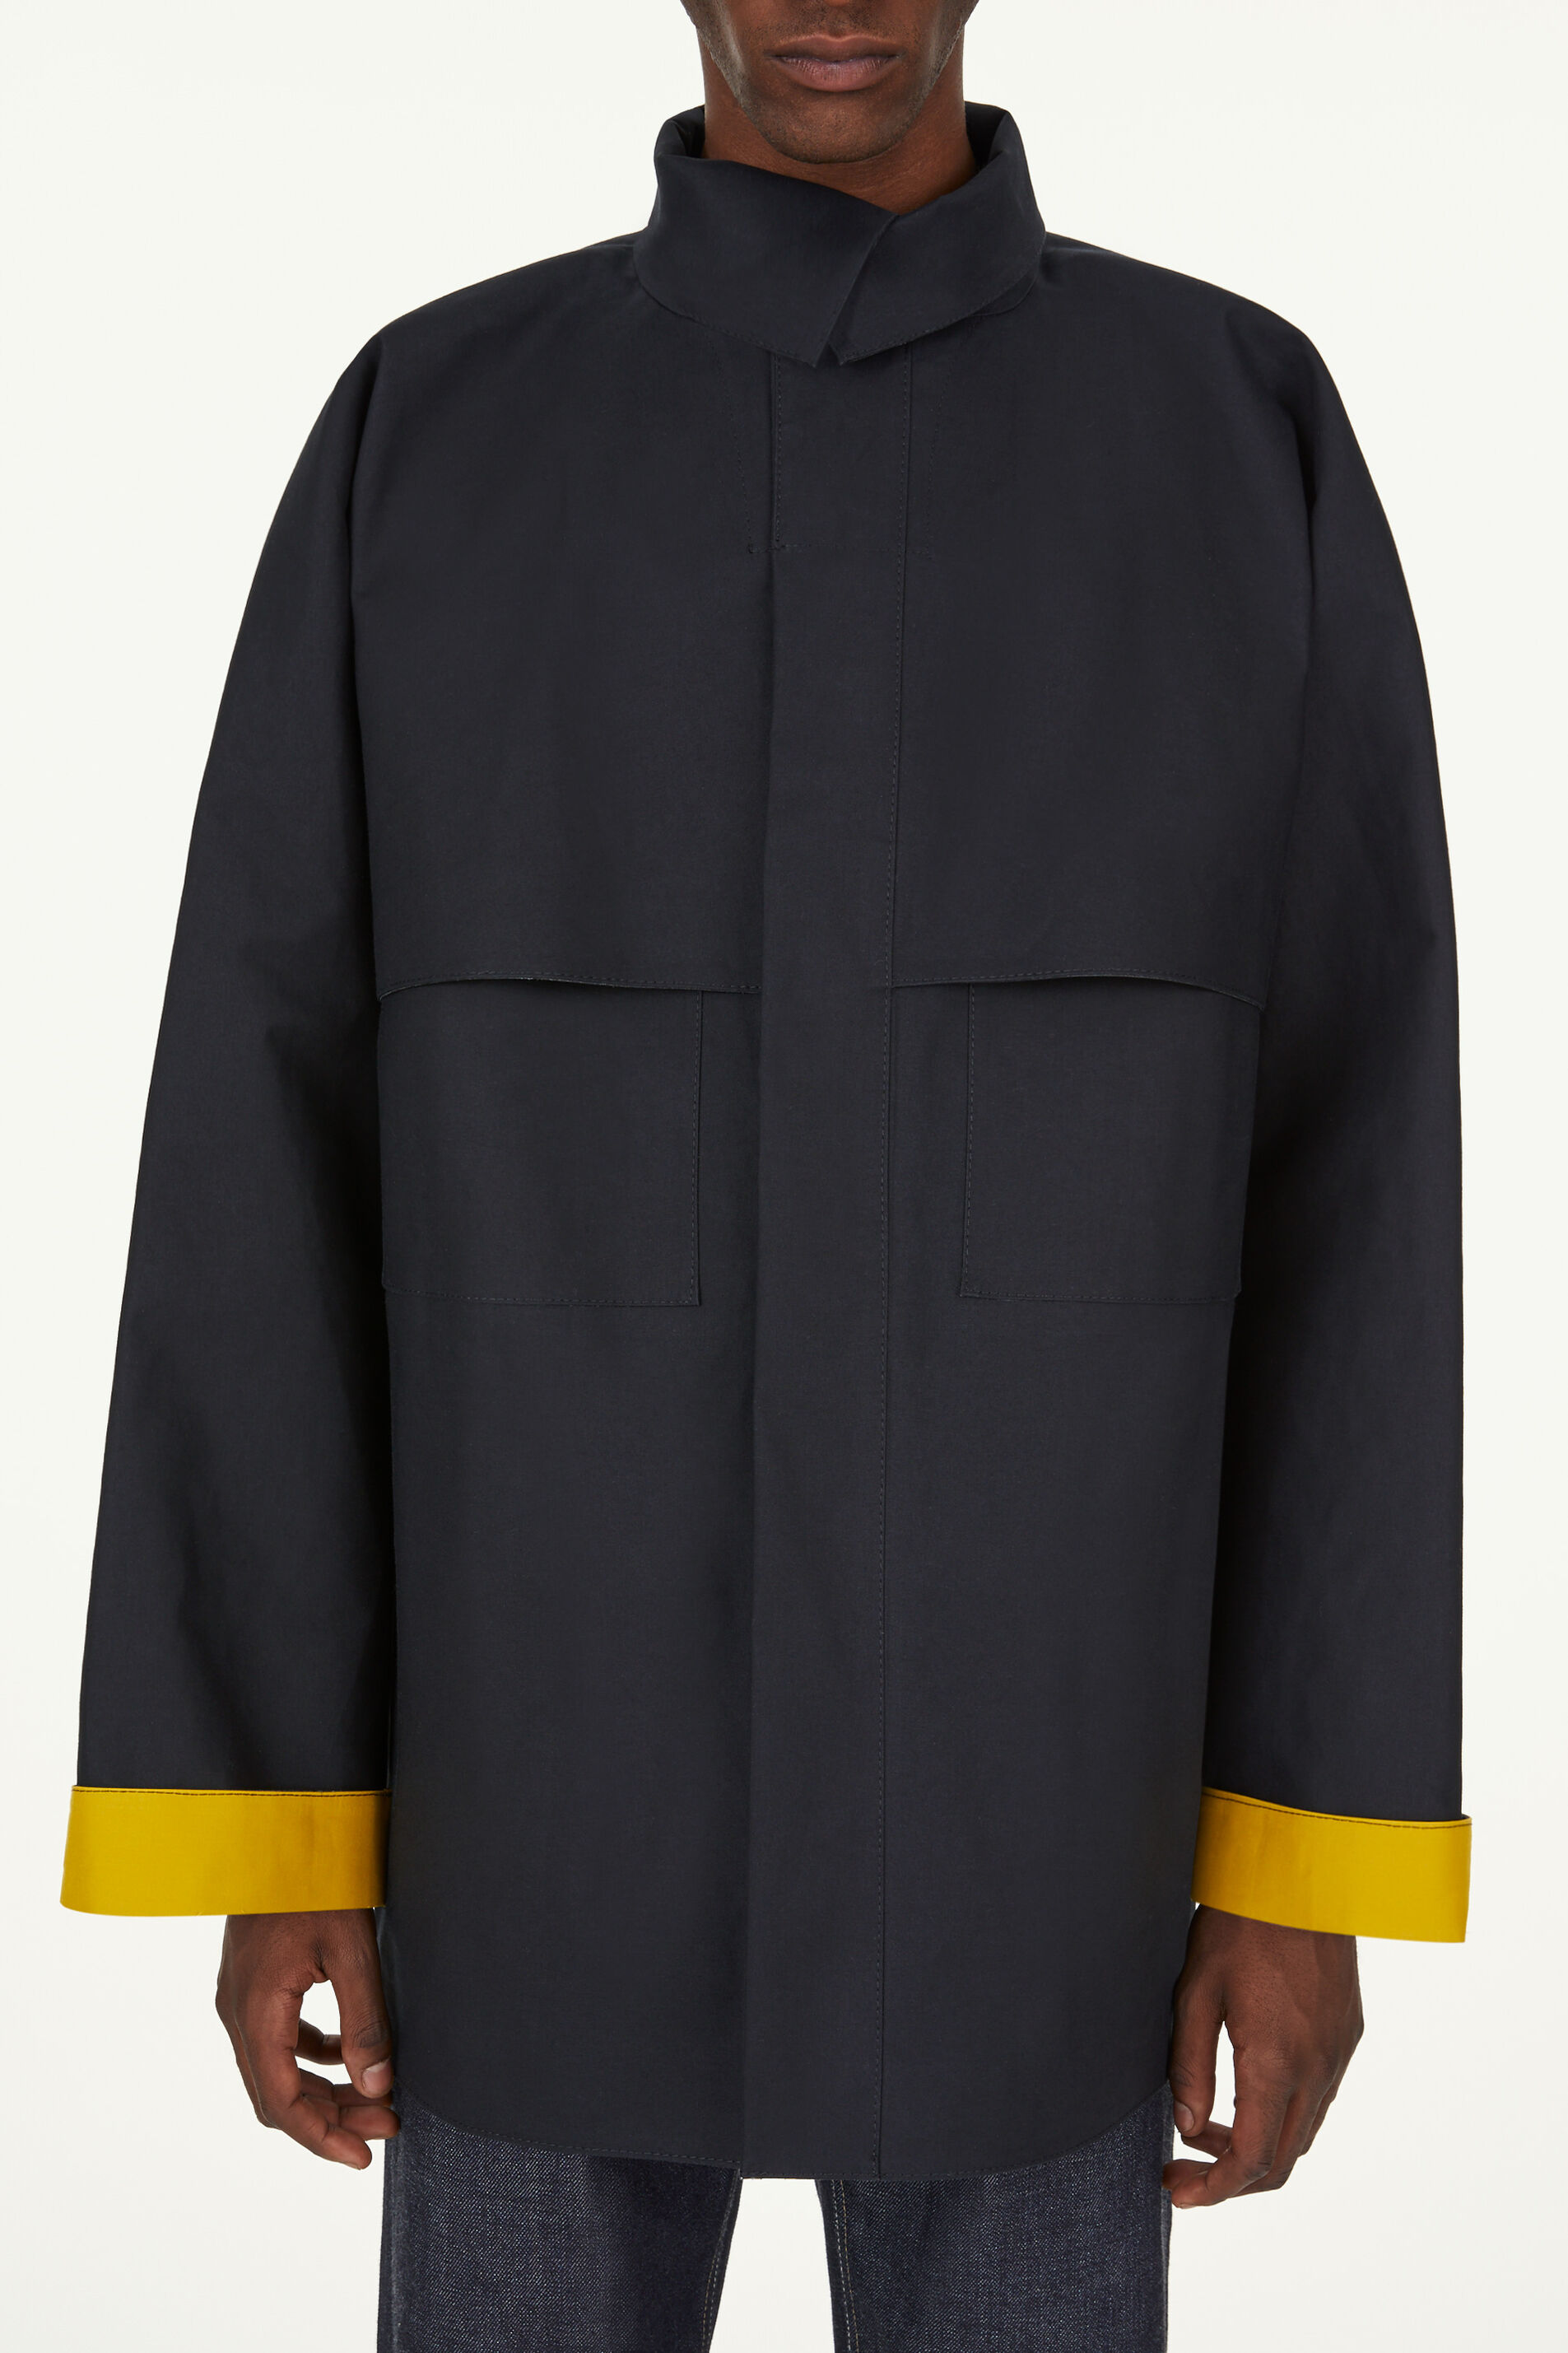 Mackintosh Field Jacket, black, large